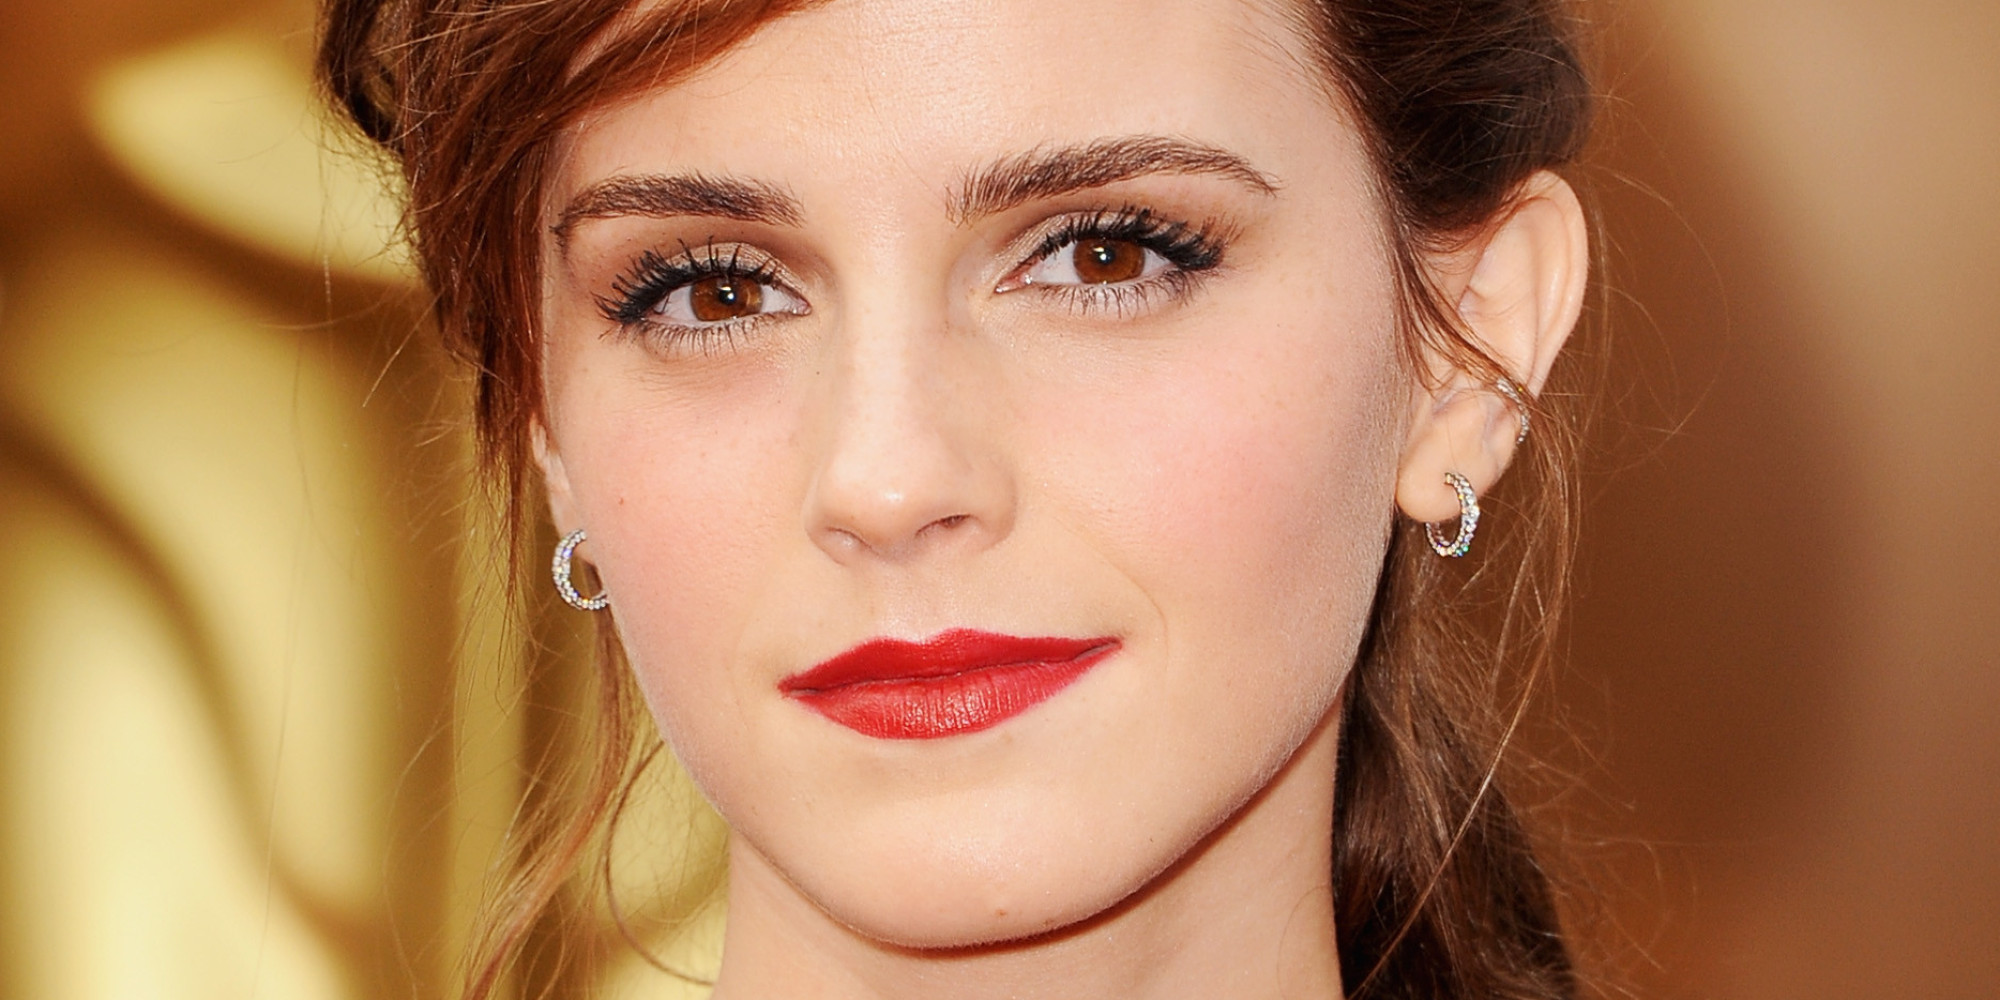 emma watson's oscars 2014 dress gets rave reviews but her hair